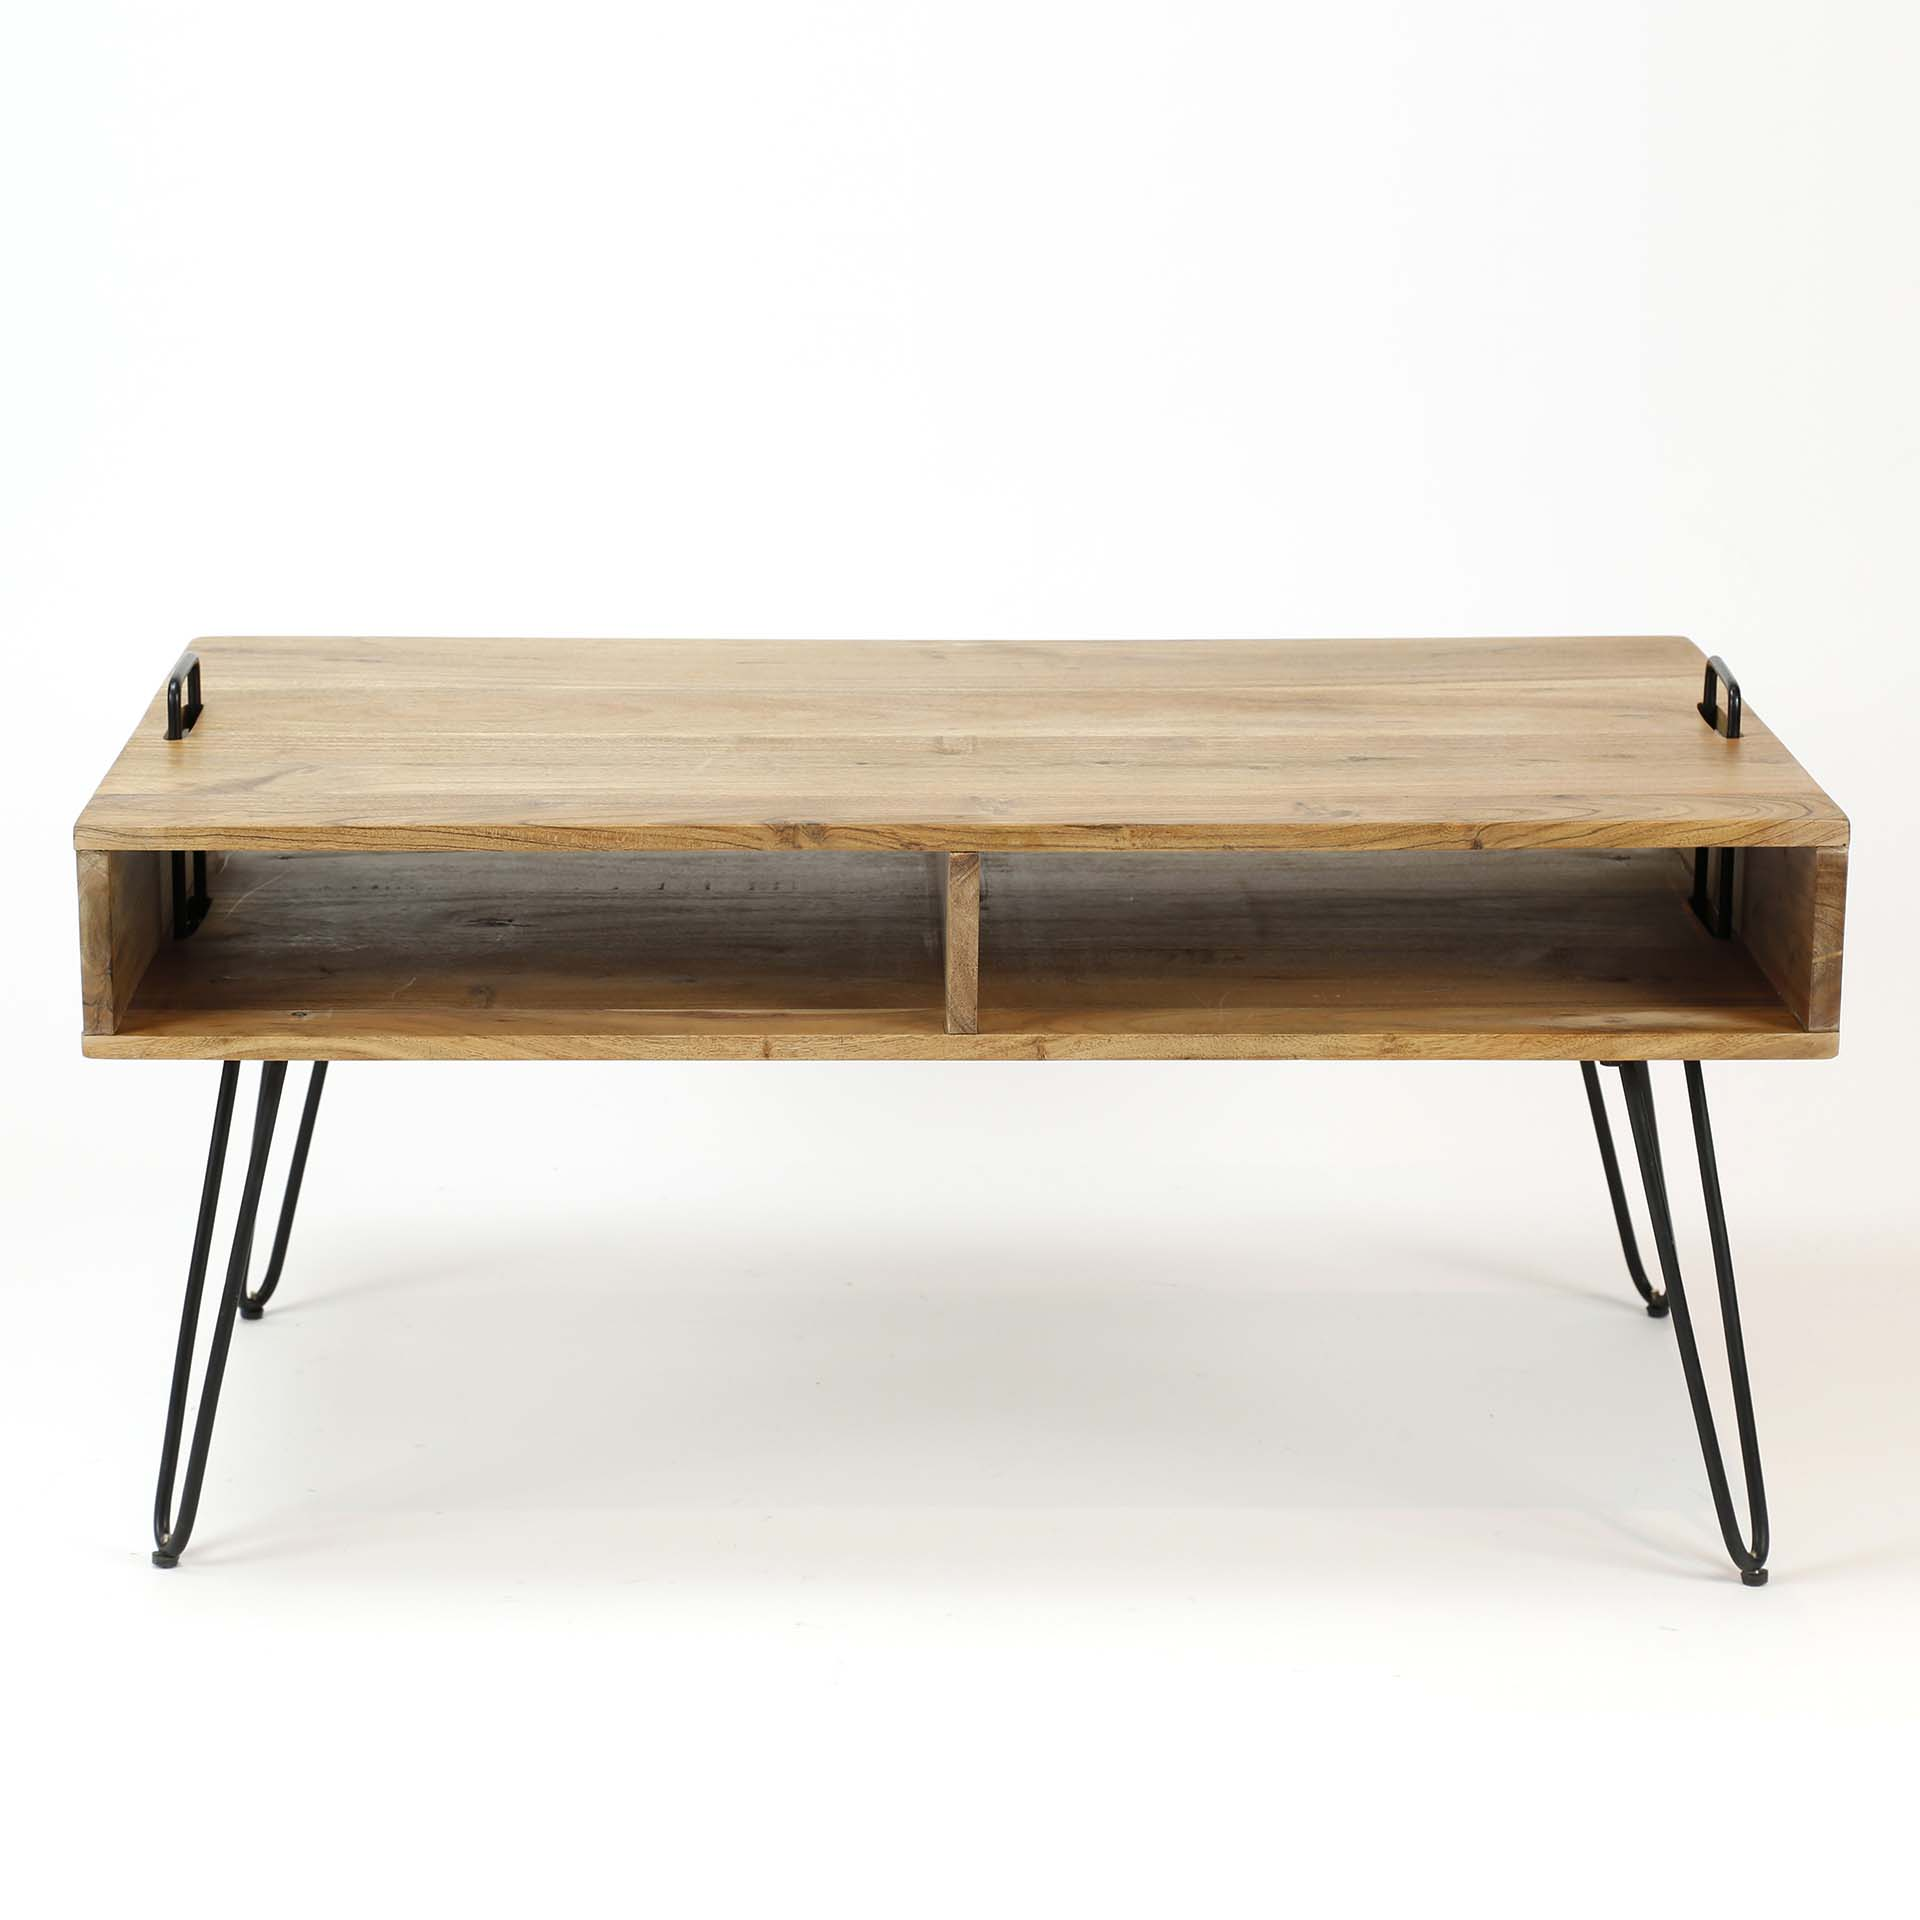 Cocktail Scandinave Saint Jacques De Lalande Table Basse Scandinave 100 Cm Ladolceviedchat Fr